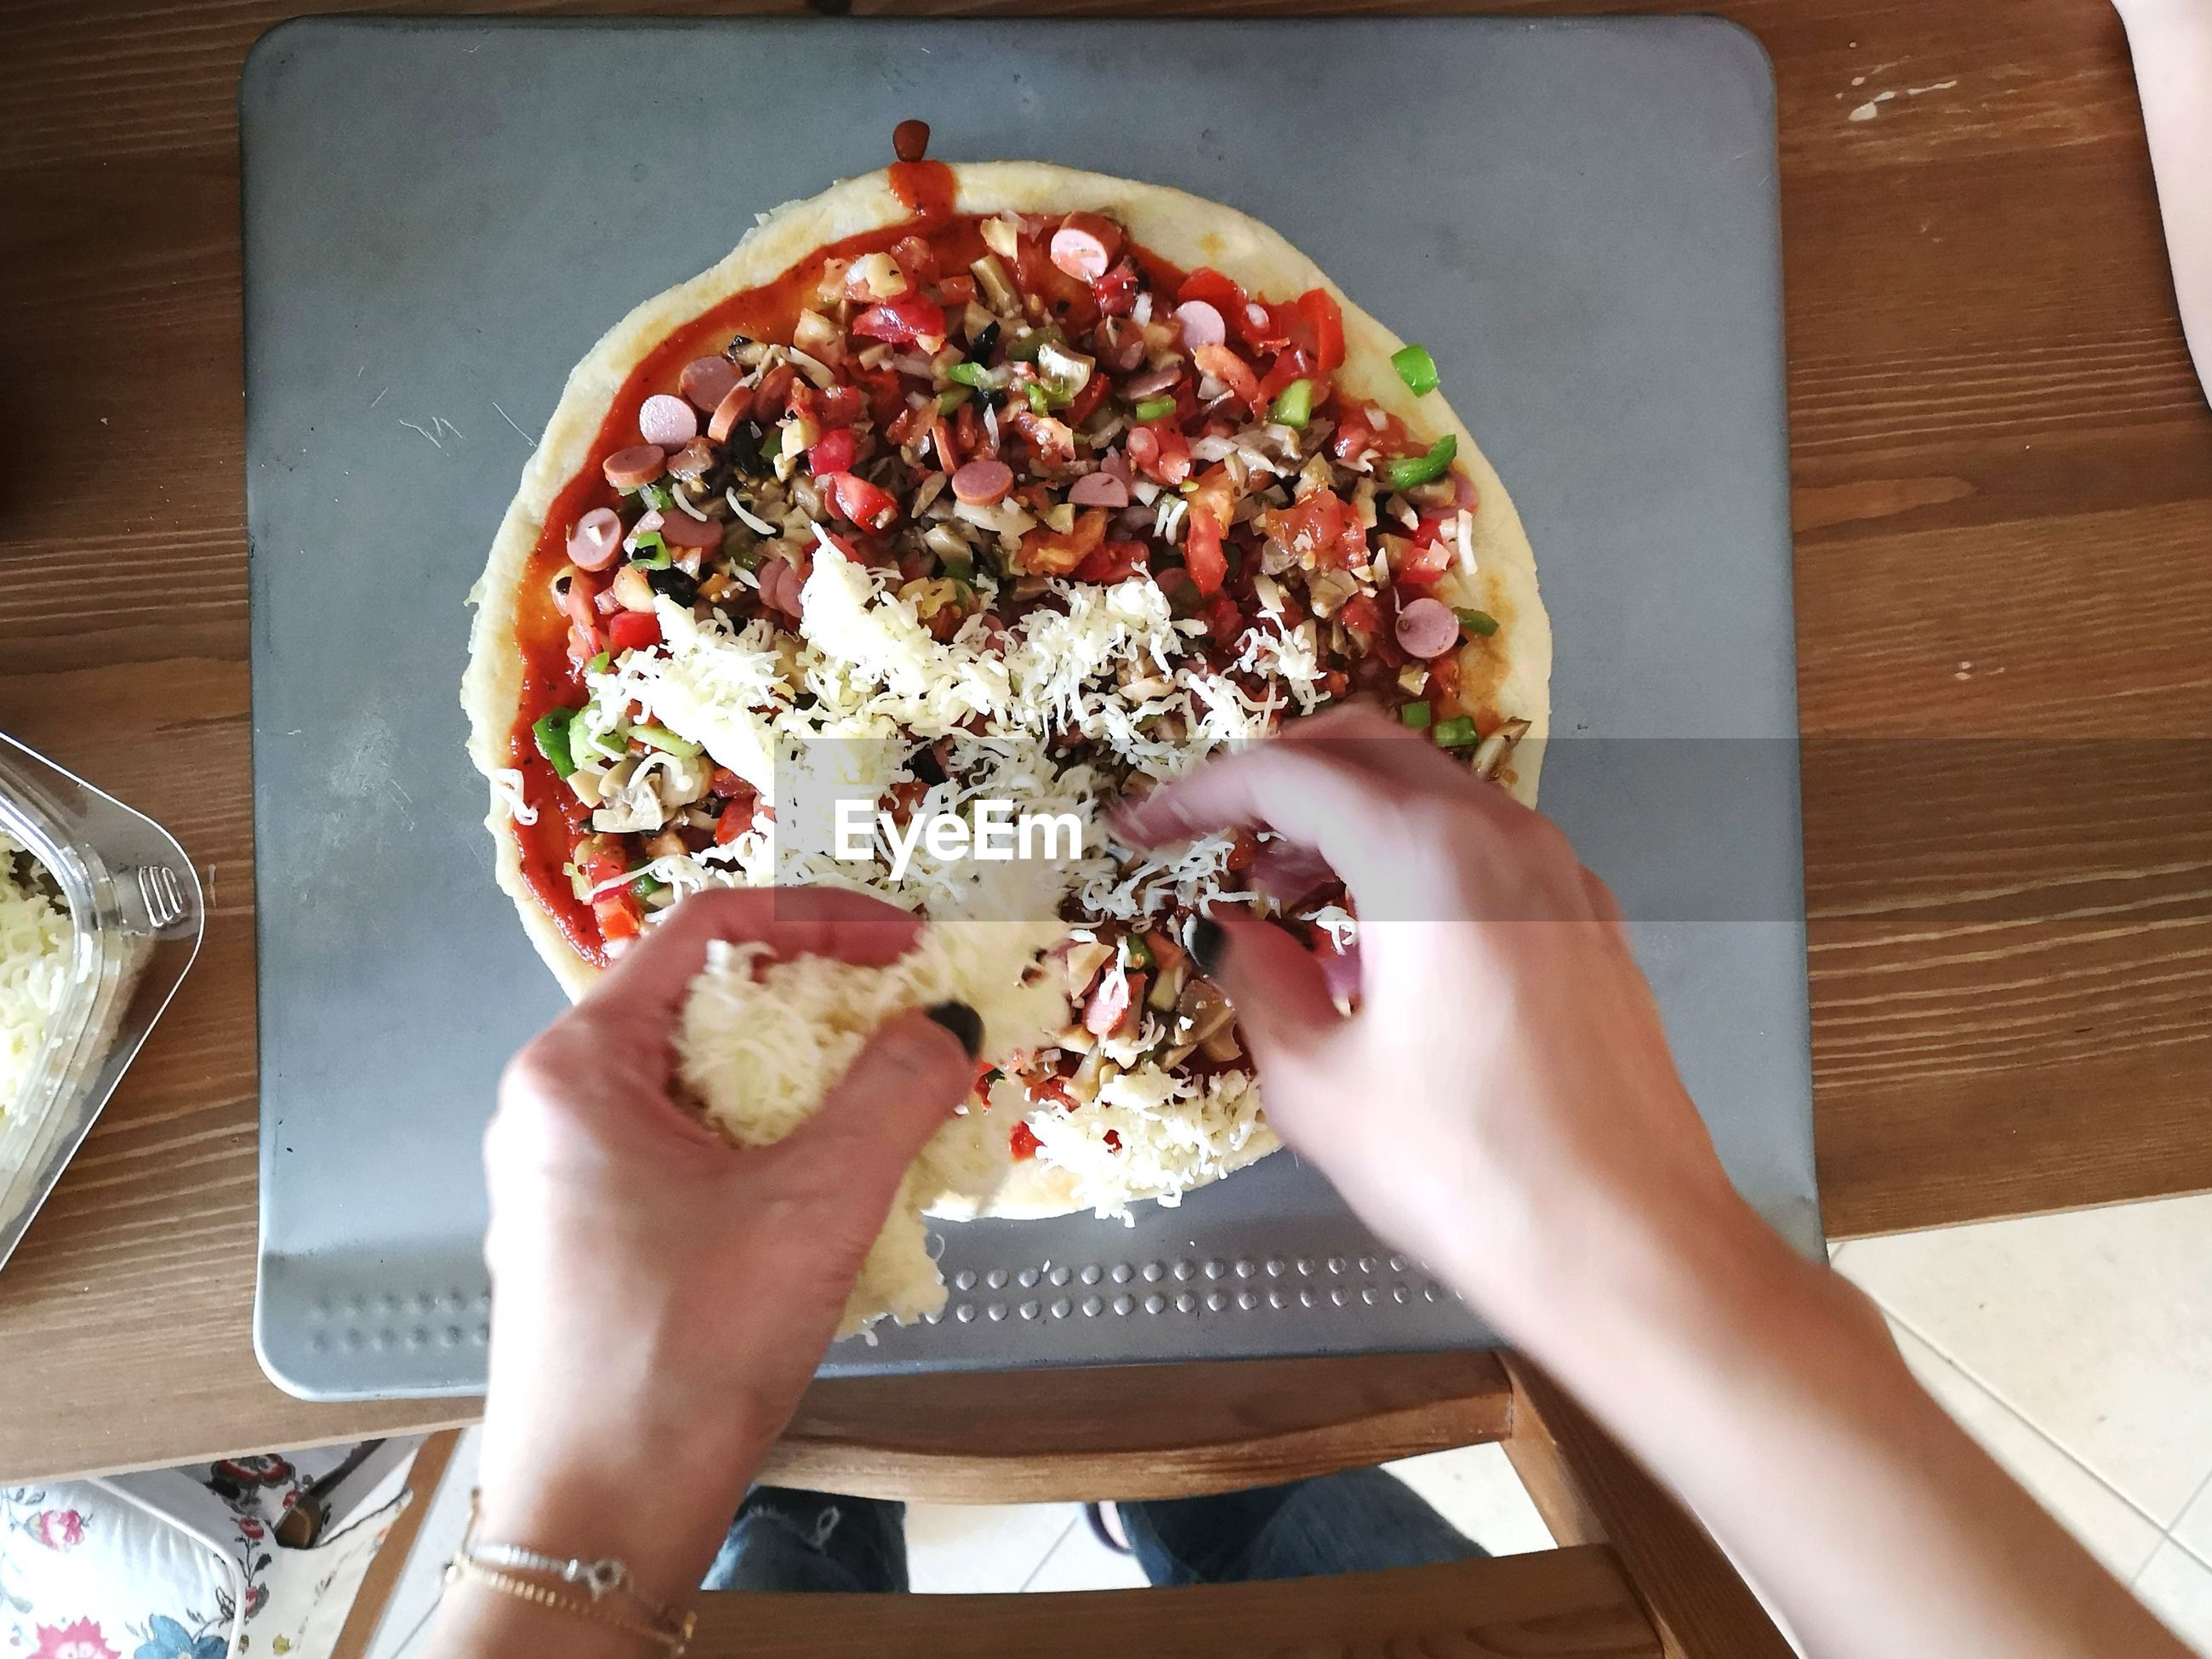 CROPPED IMAGE OF HAND HOLDING PIZZA